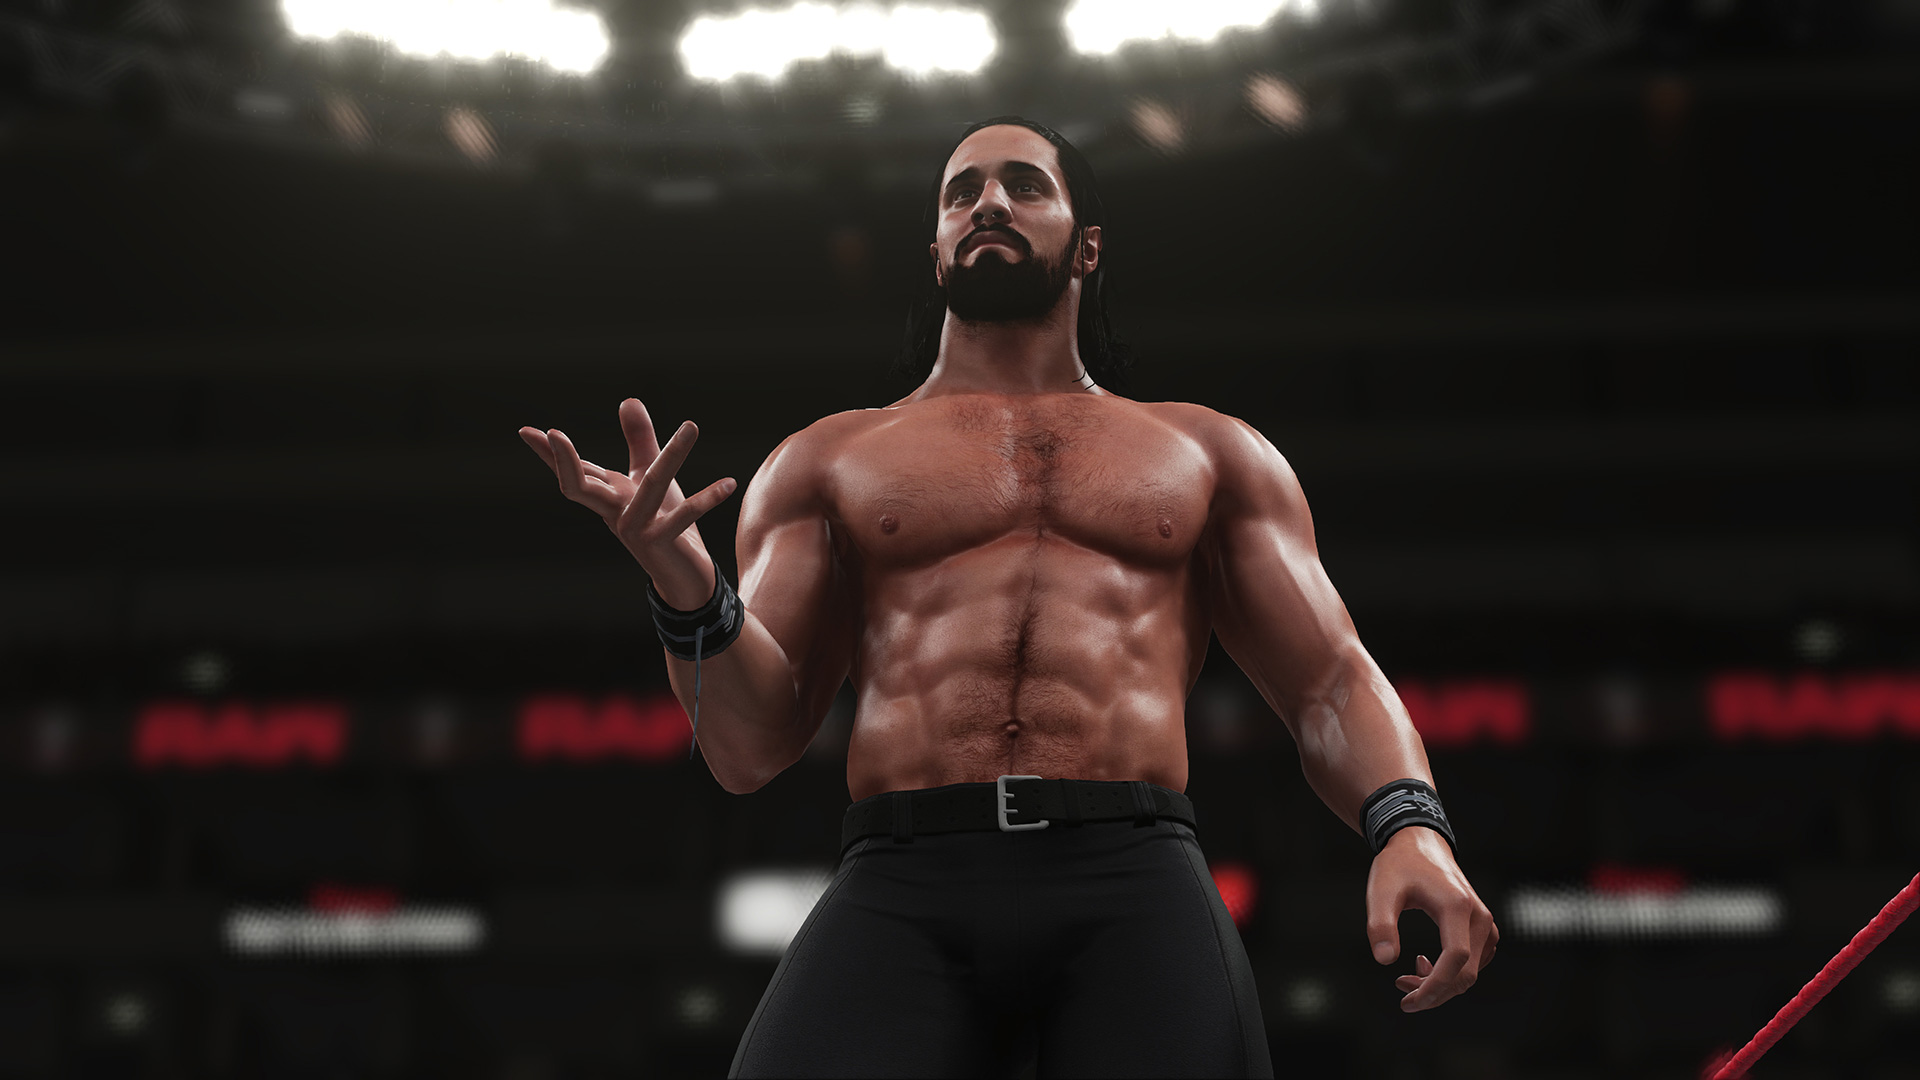 WWE 2K18 (PS4) - if only the game modes showed as much muscle